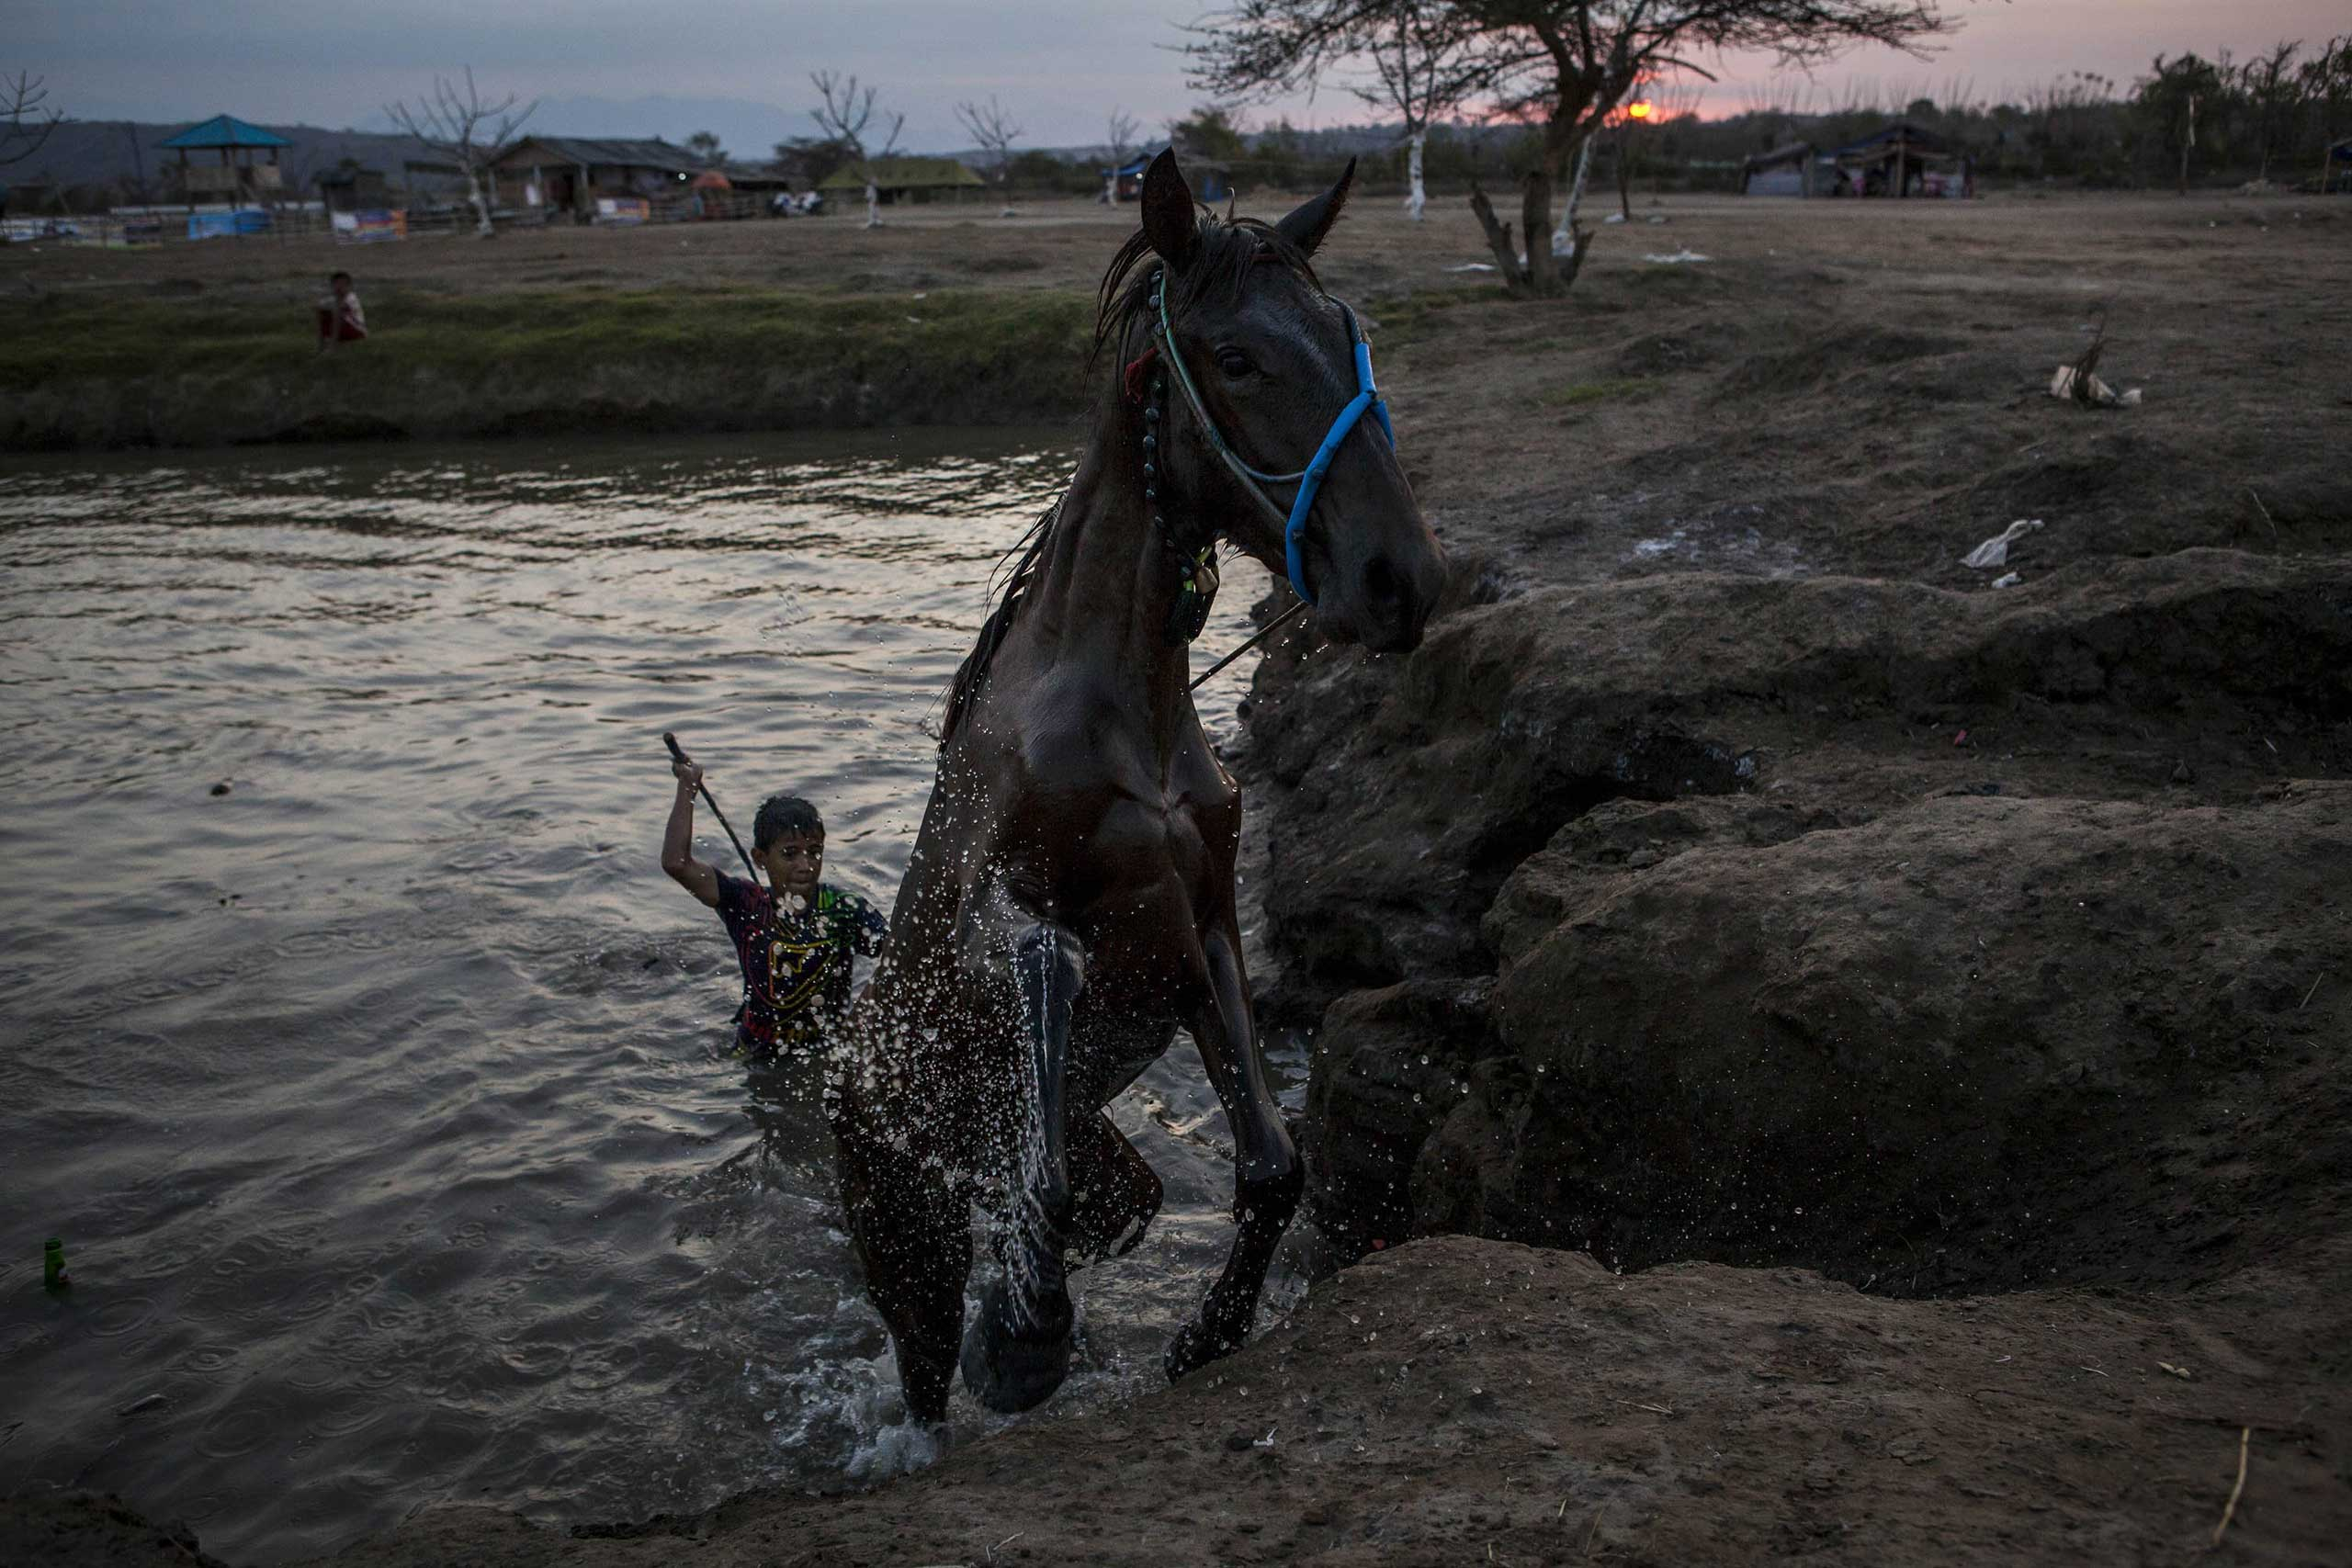 Sept. 26, 2014. A horse comes out of the water after being given a bath by a child jockey before the traditional horse races as part of Moyo festival in Sumbawa Island, West Nusa Tenggara, Indonesia.